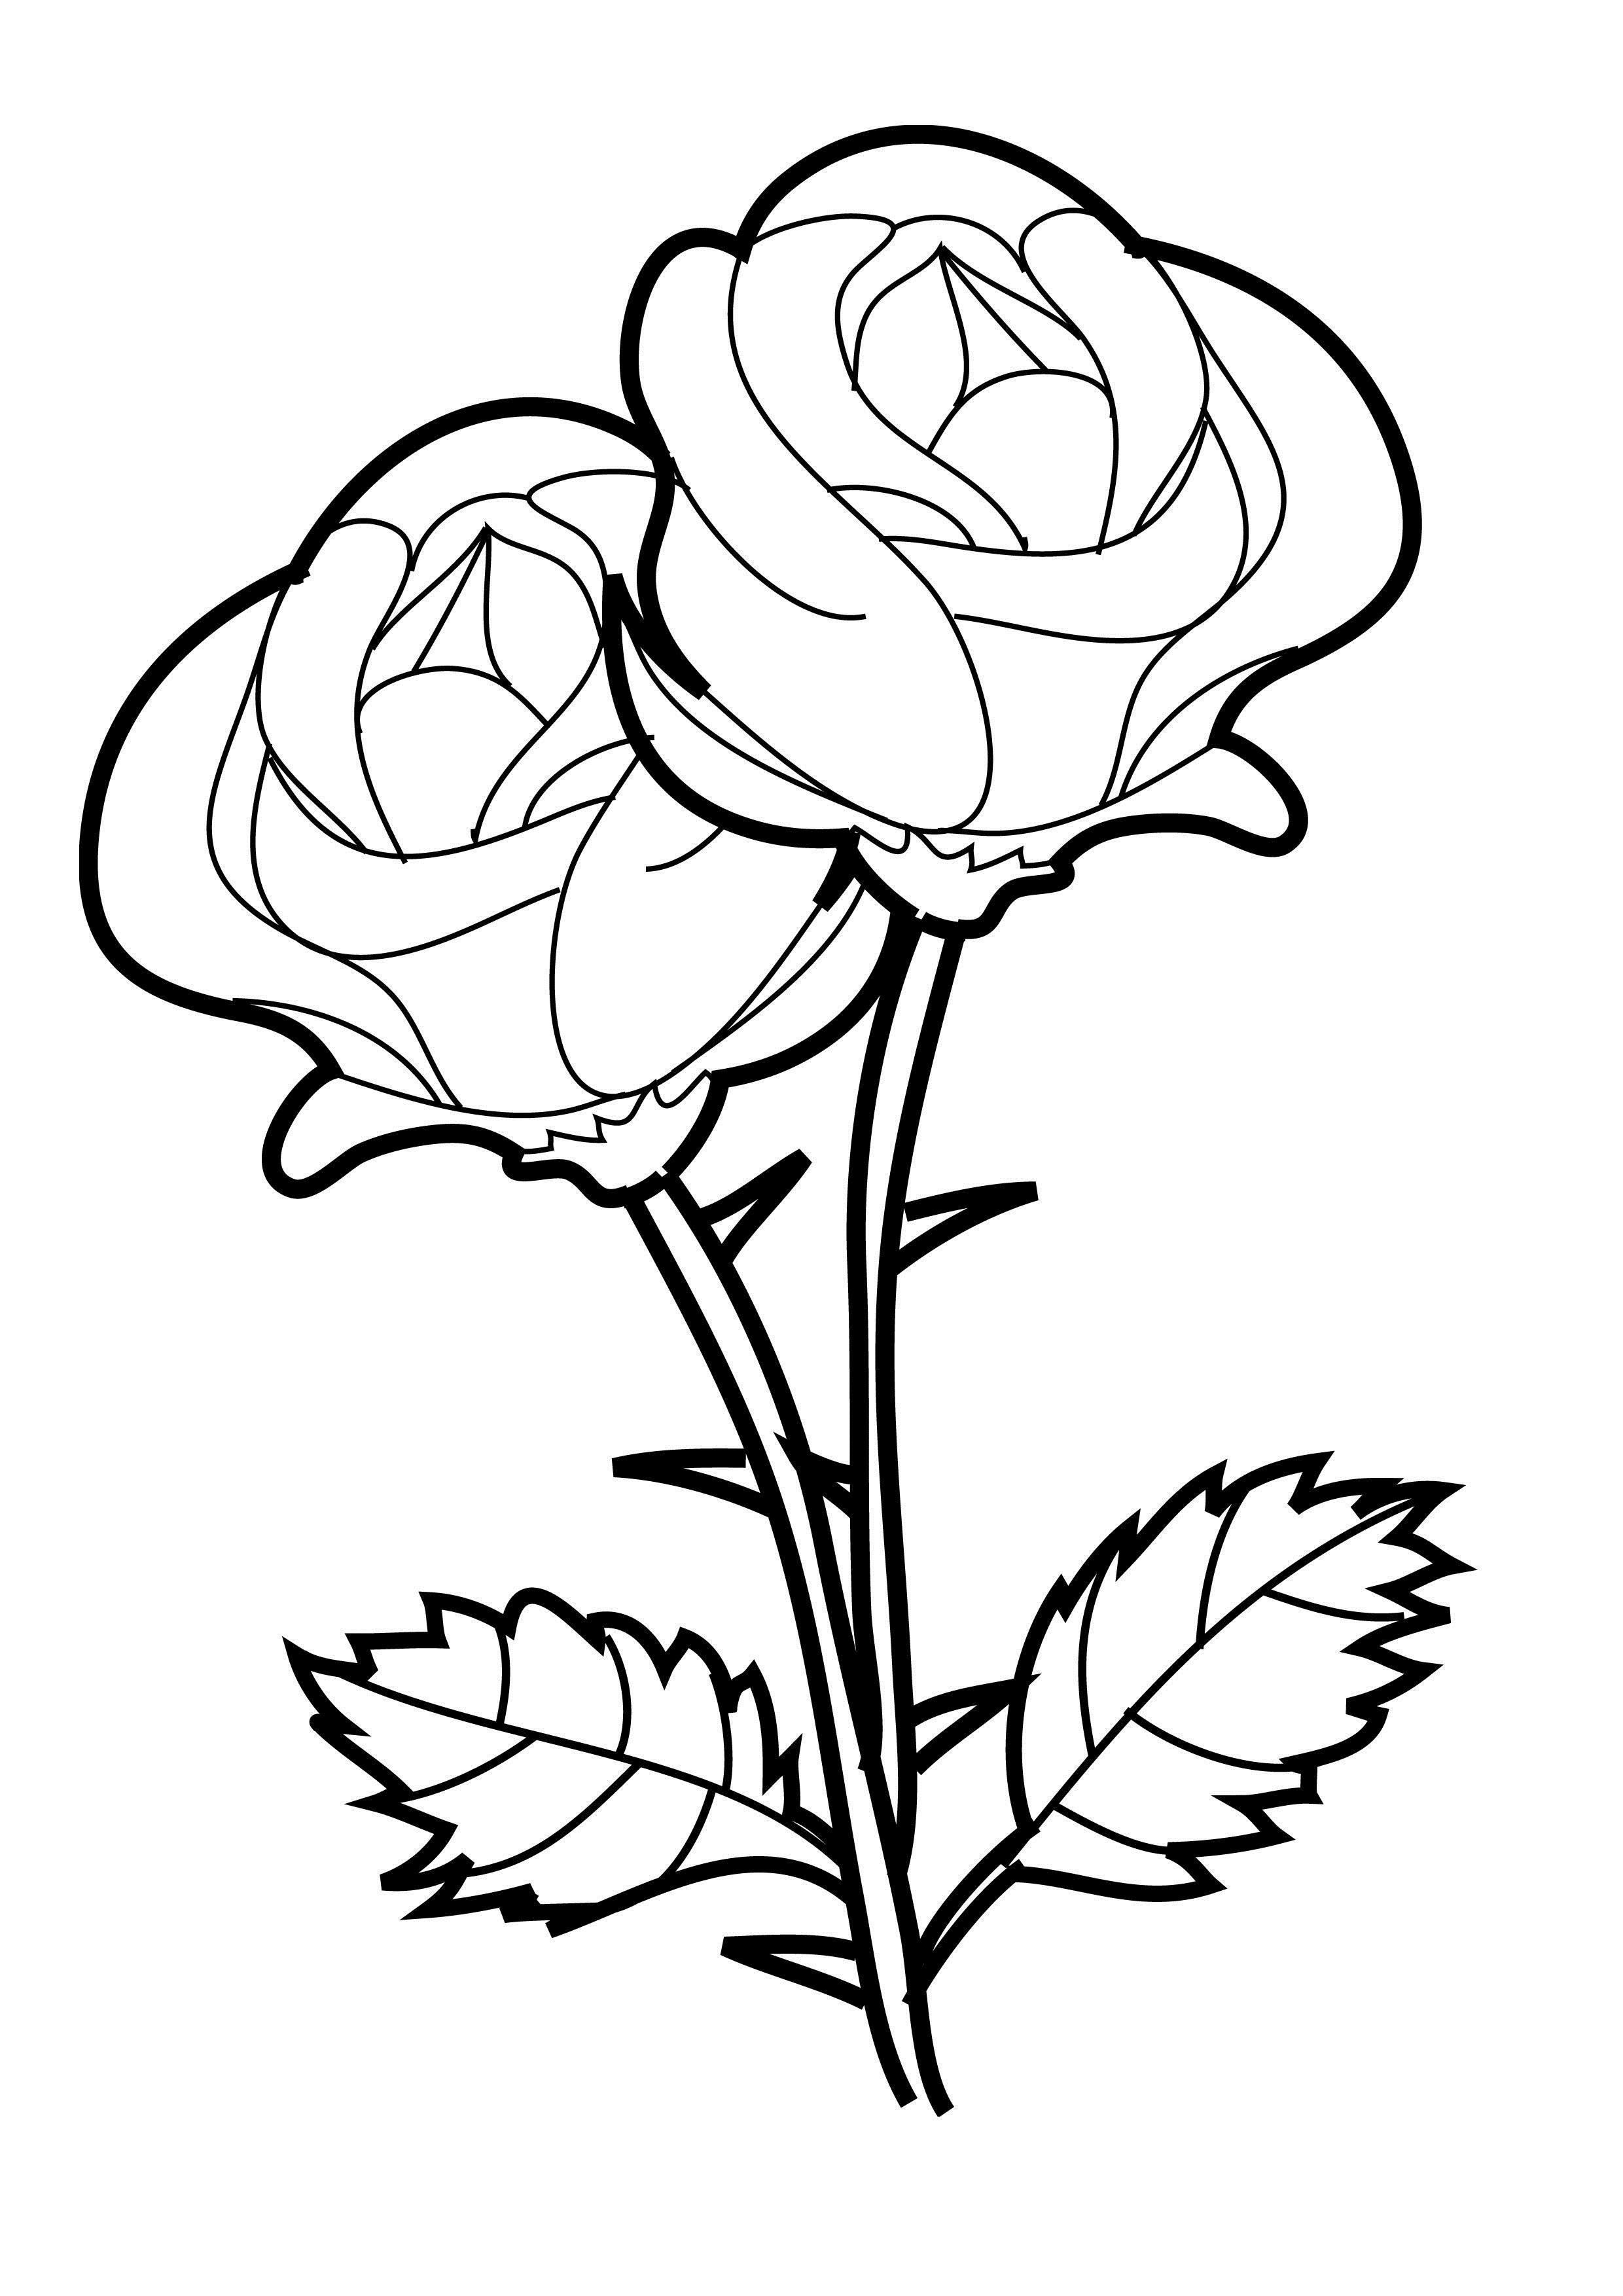 rose coloring sheet roses coloring pages to download and print for free rose sheet coloring